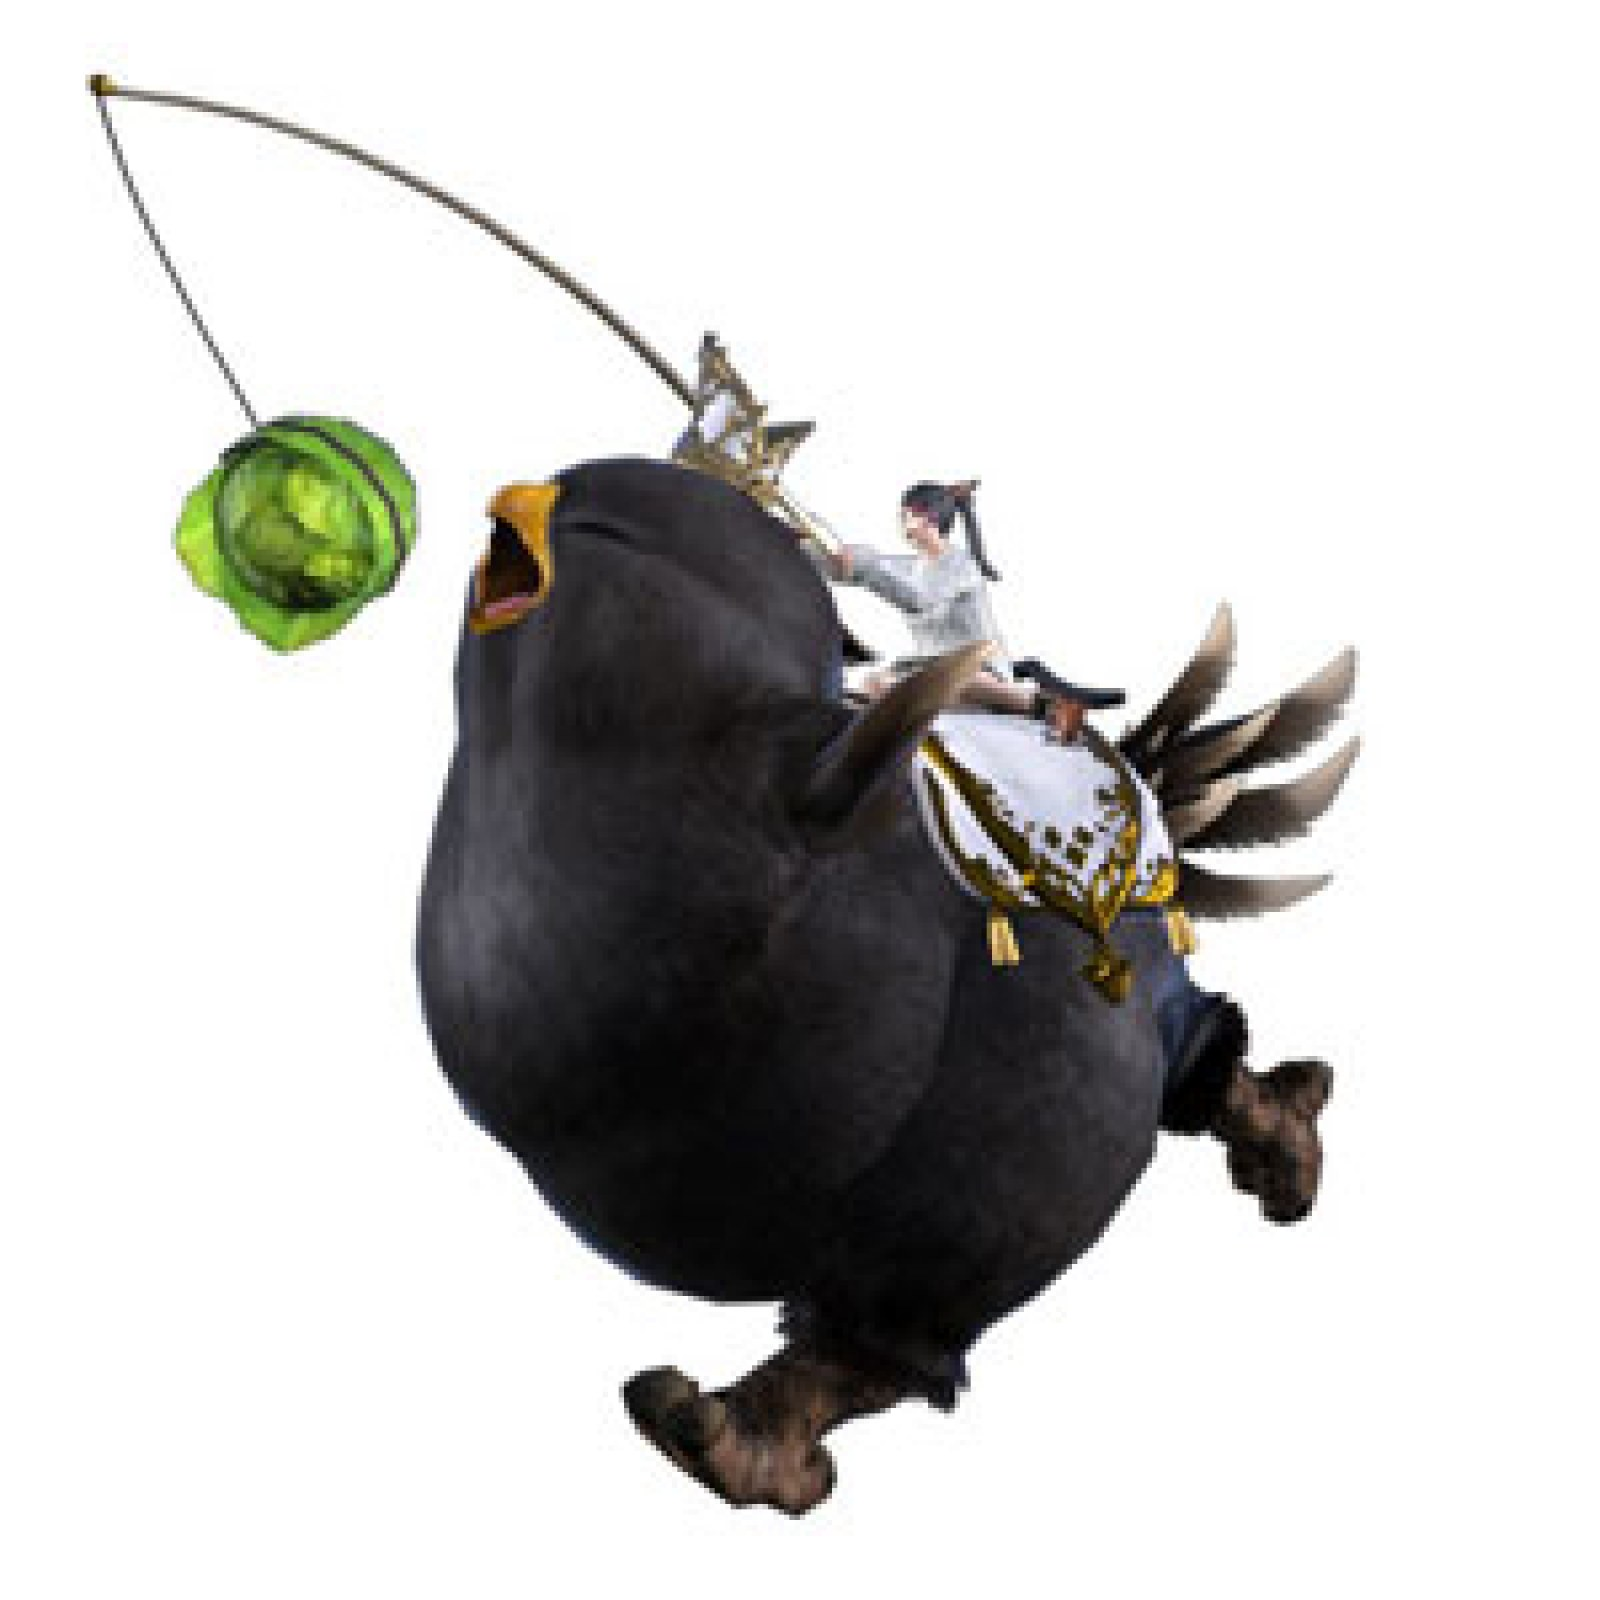 Amazon Offers 'FFXIV' Black Fat Chocobo DLC for Free During Game